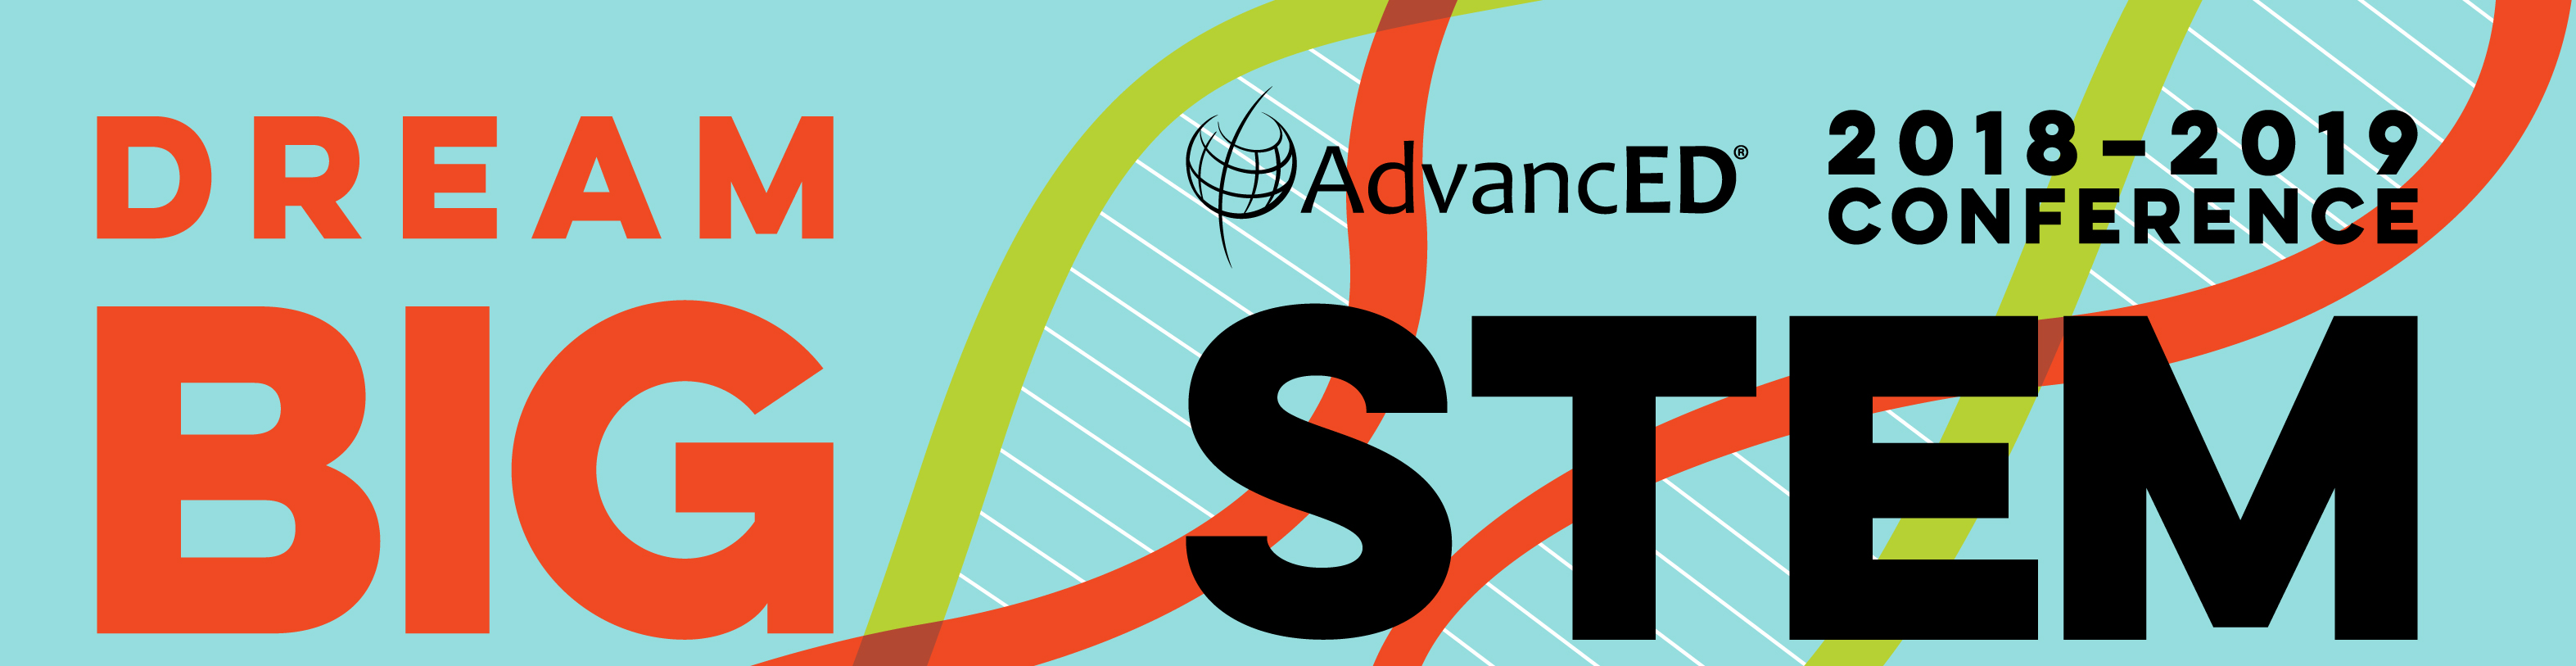 AdvancED Midwest STEM Summit 2019